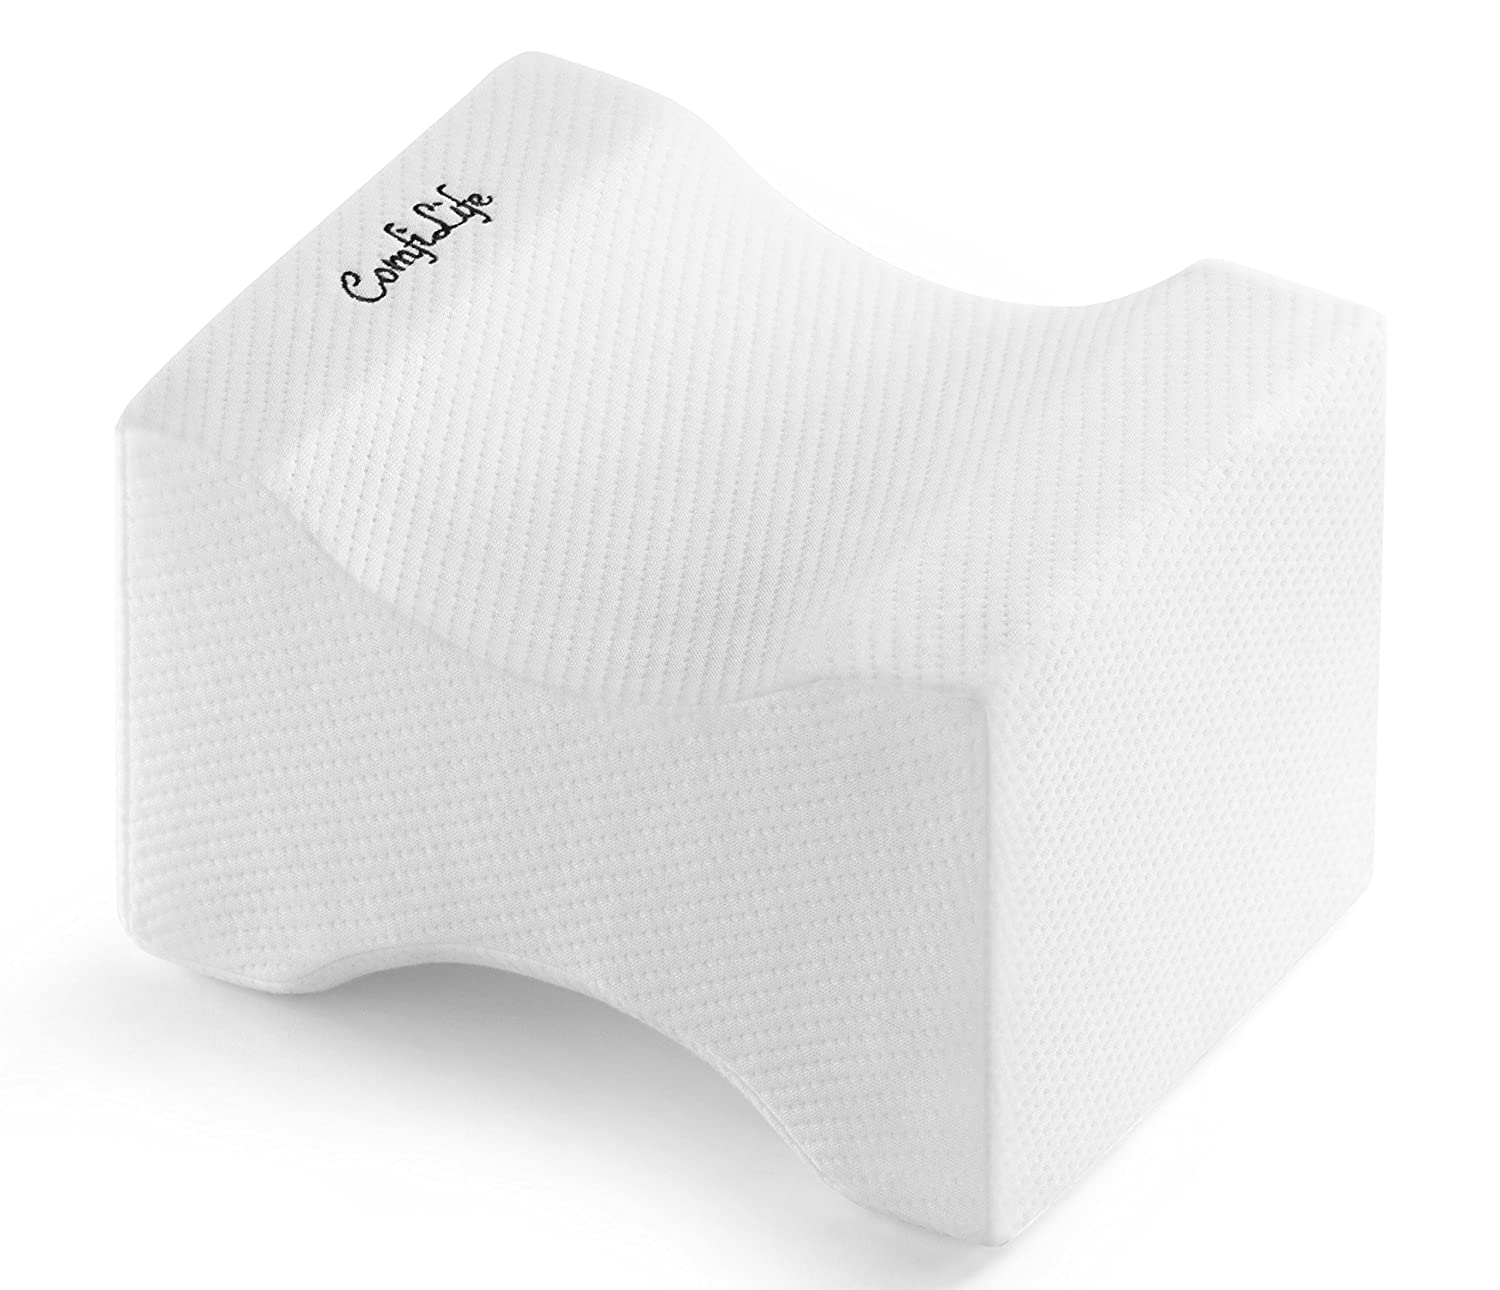 ComfiLife Orthopedic Knee Pillow for Sciatica Relief, Back Pain, Leg Pain